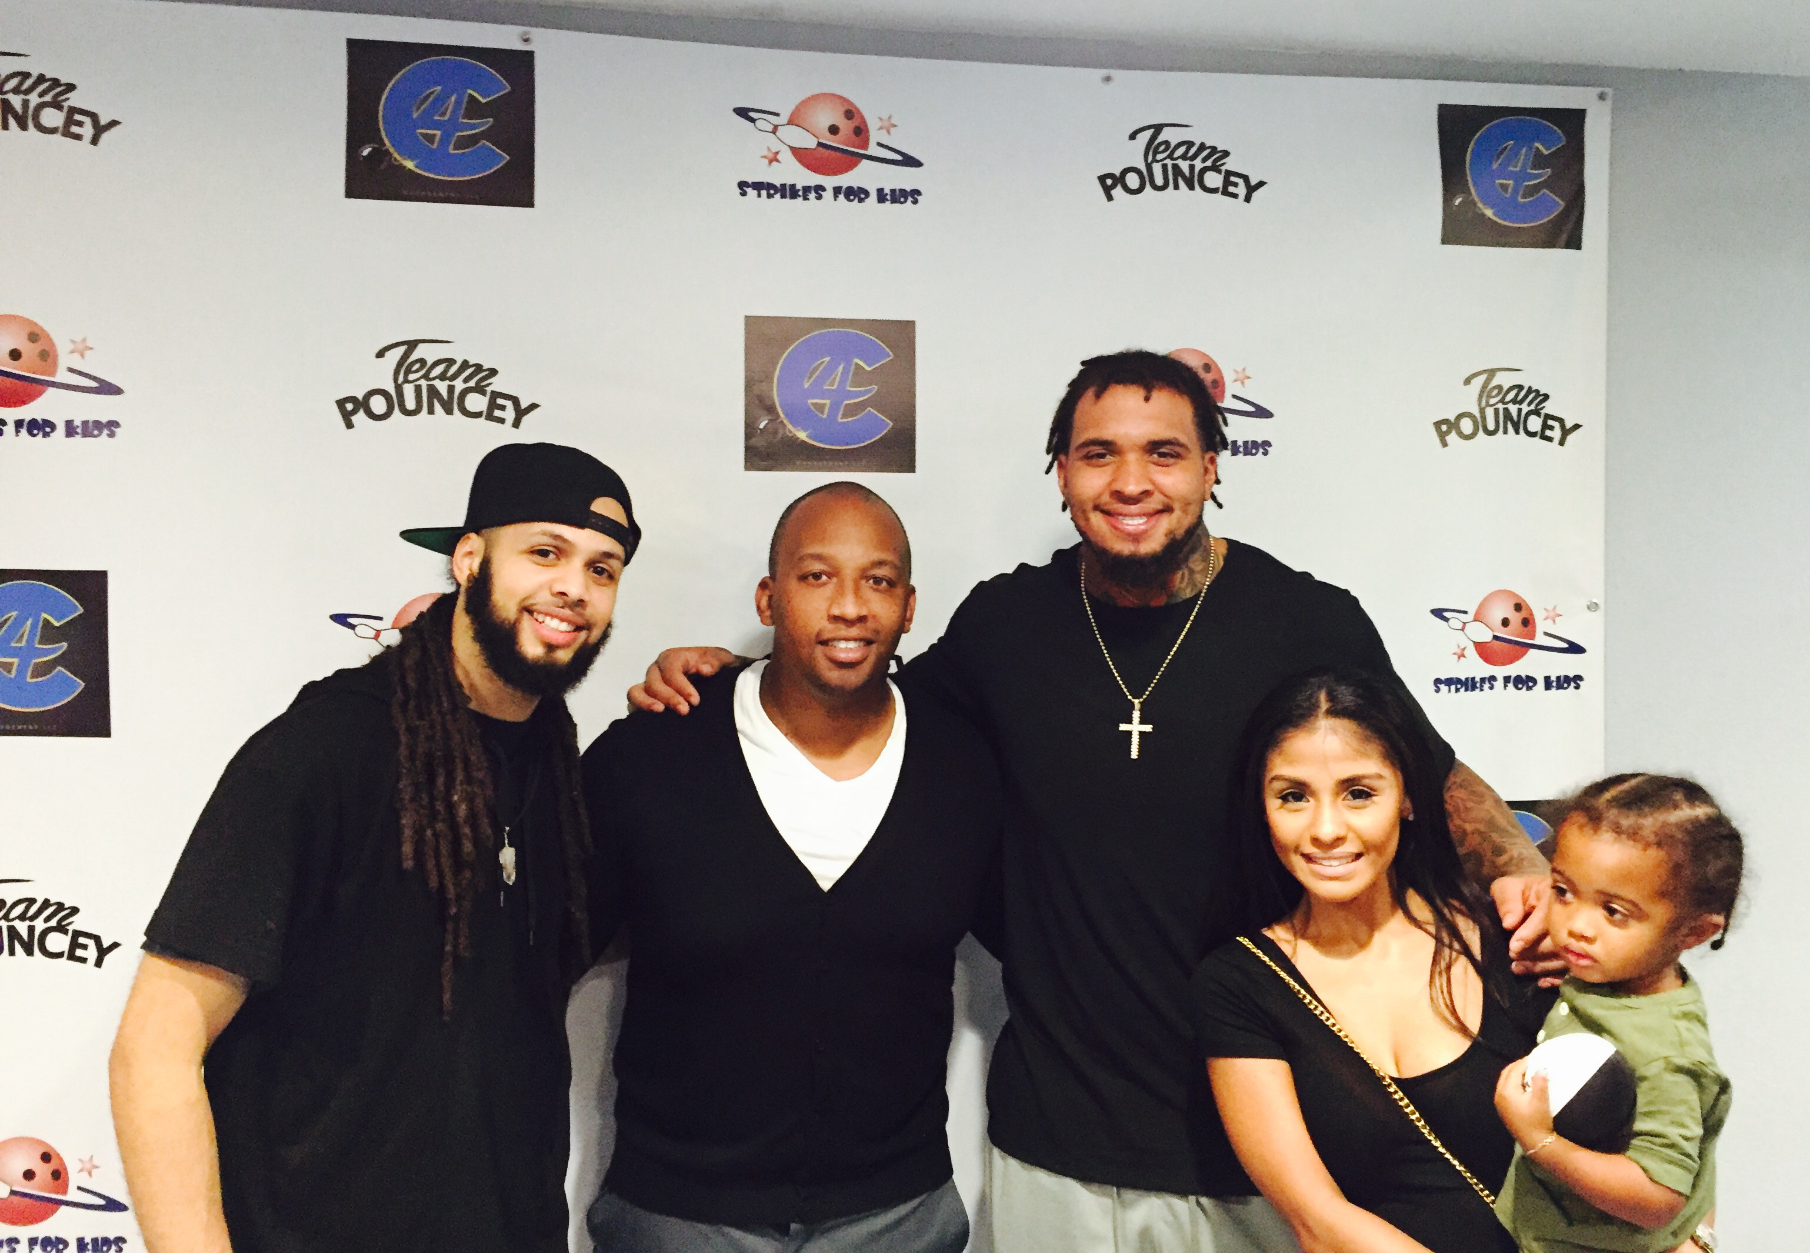 Mike Pouncey Bowling Event